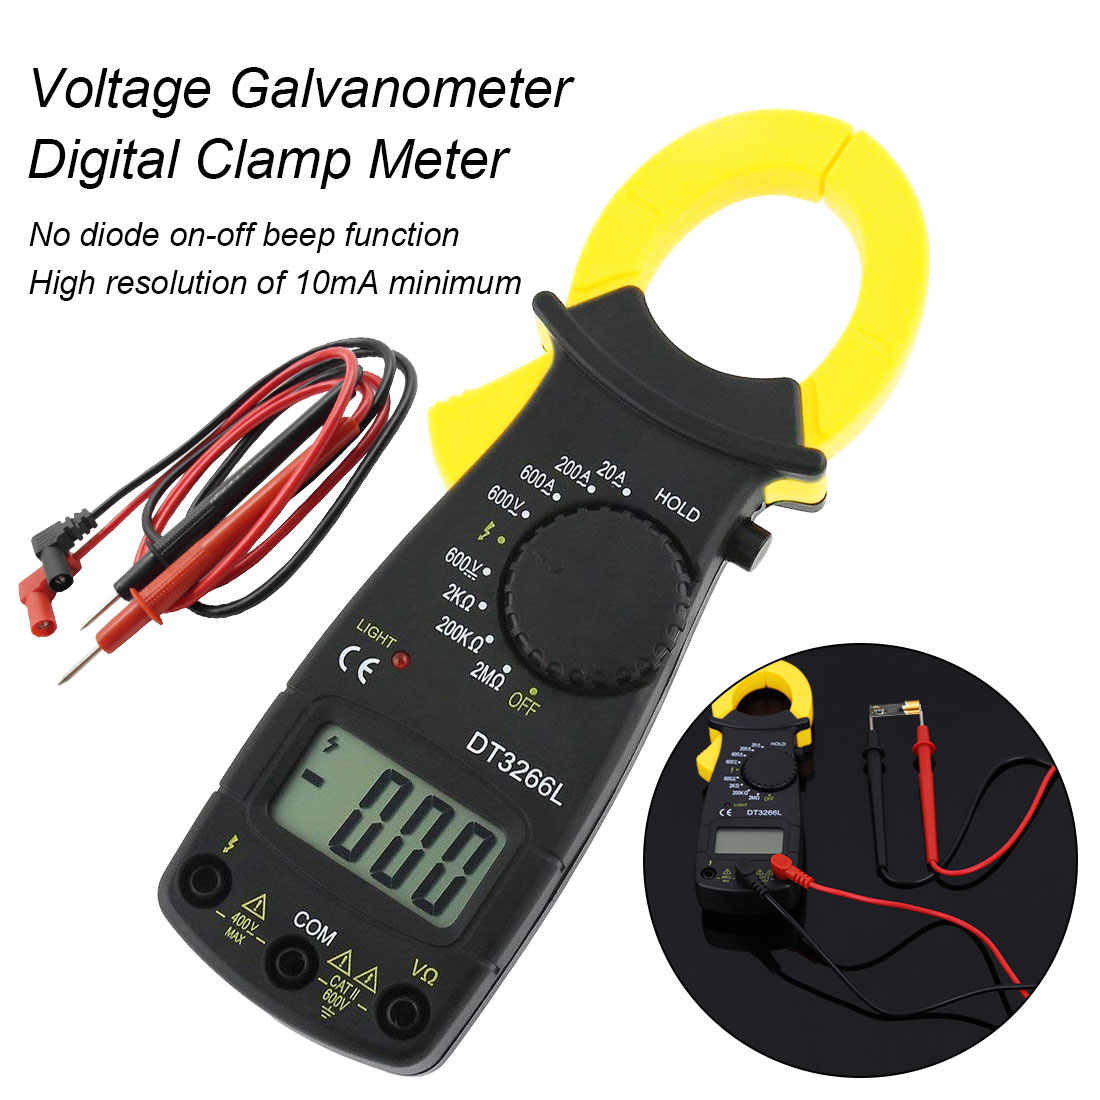 600A AC/DC Multimeter Current Clamp Pincers Digital Clamp Meter Voltmeter Ammeter Ohm Current Voltage Tester DT-3266L